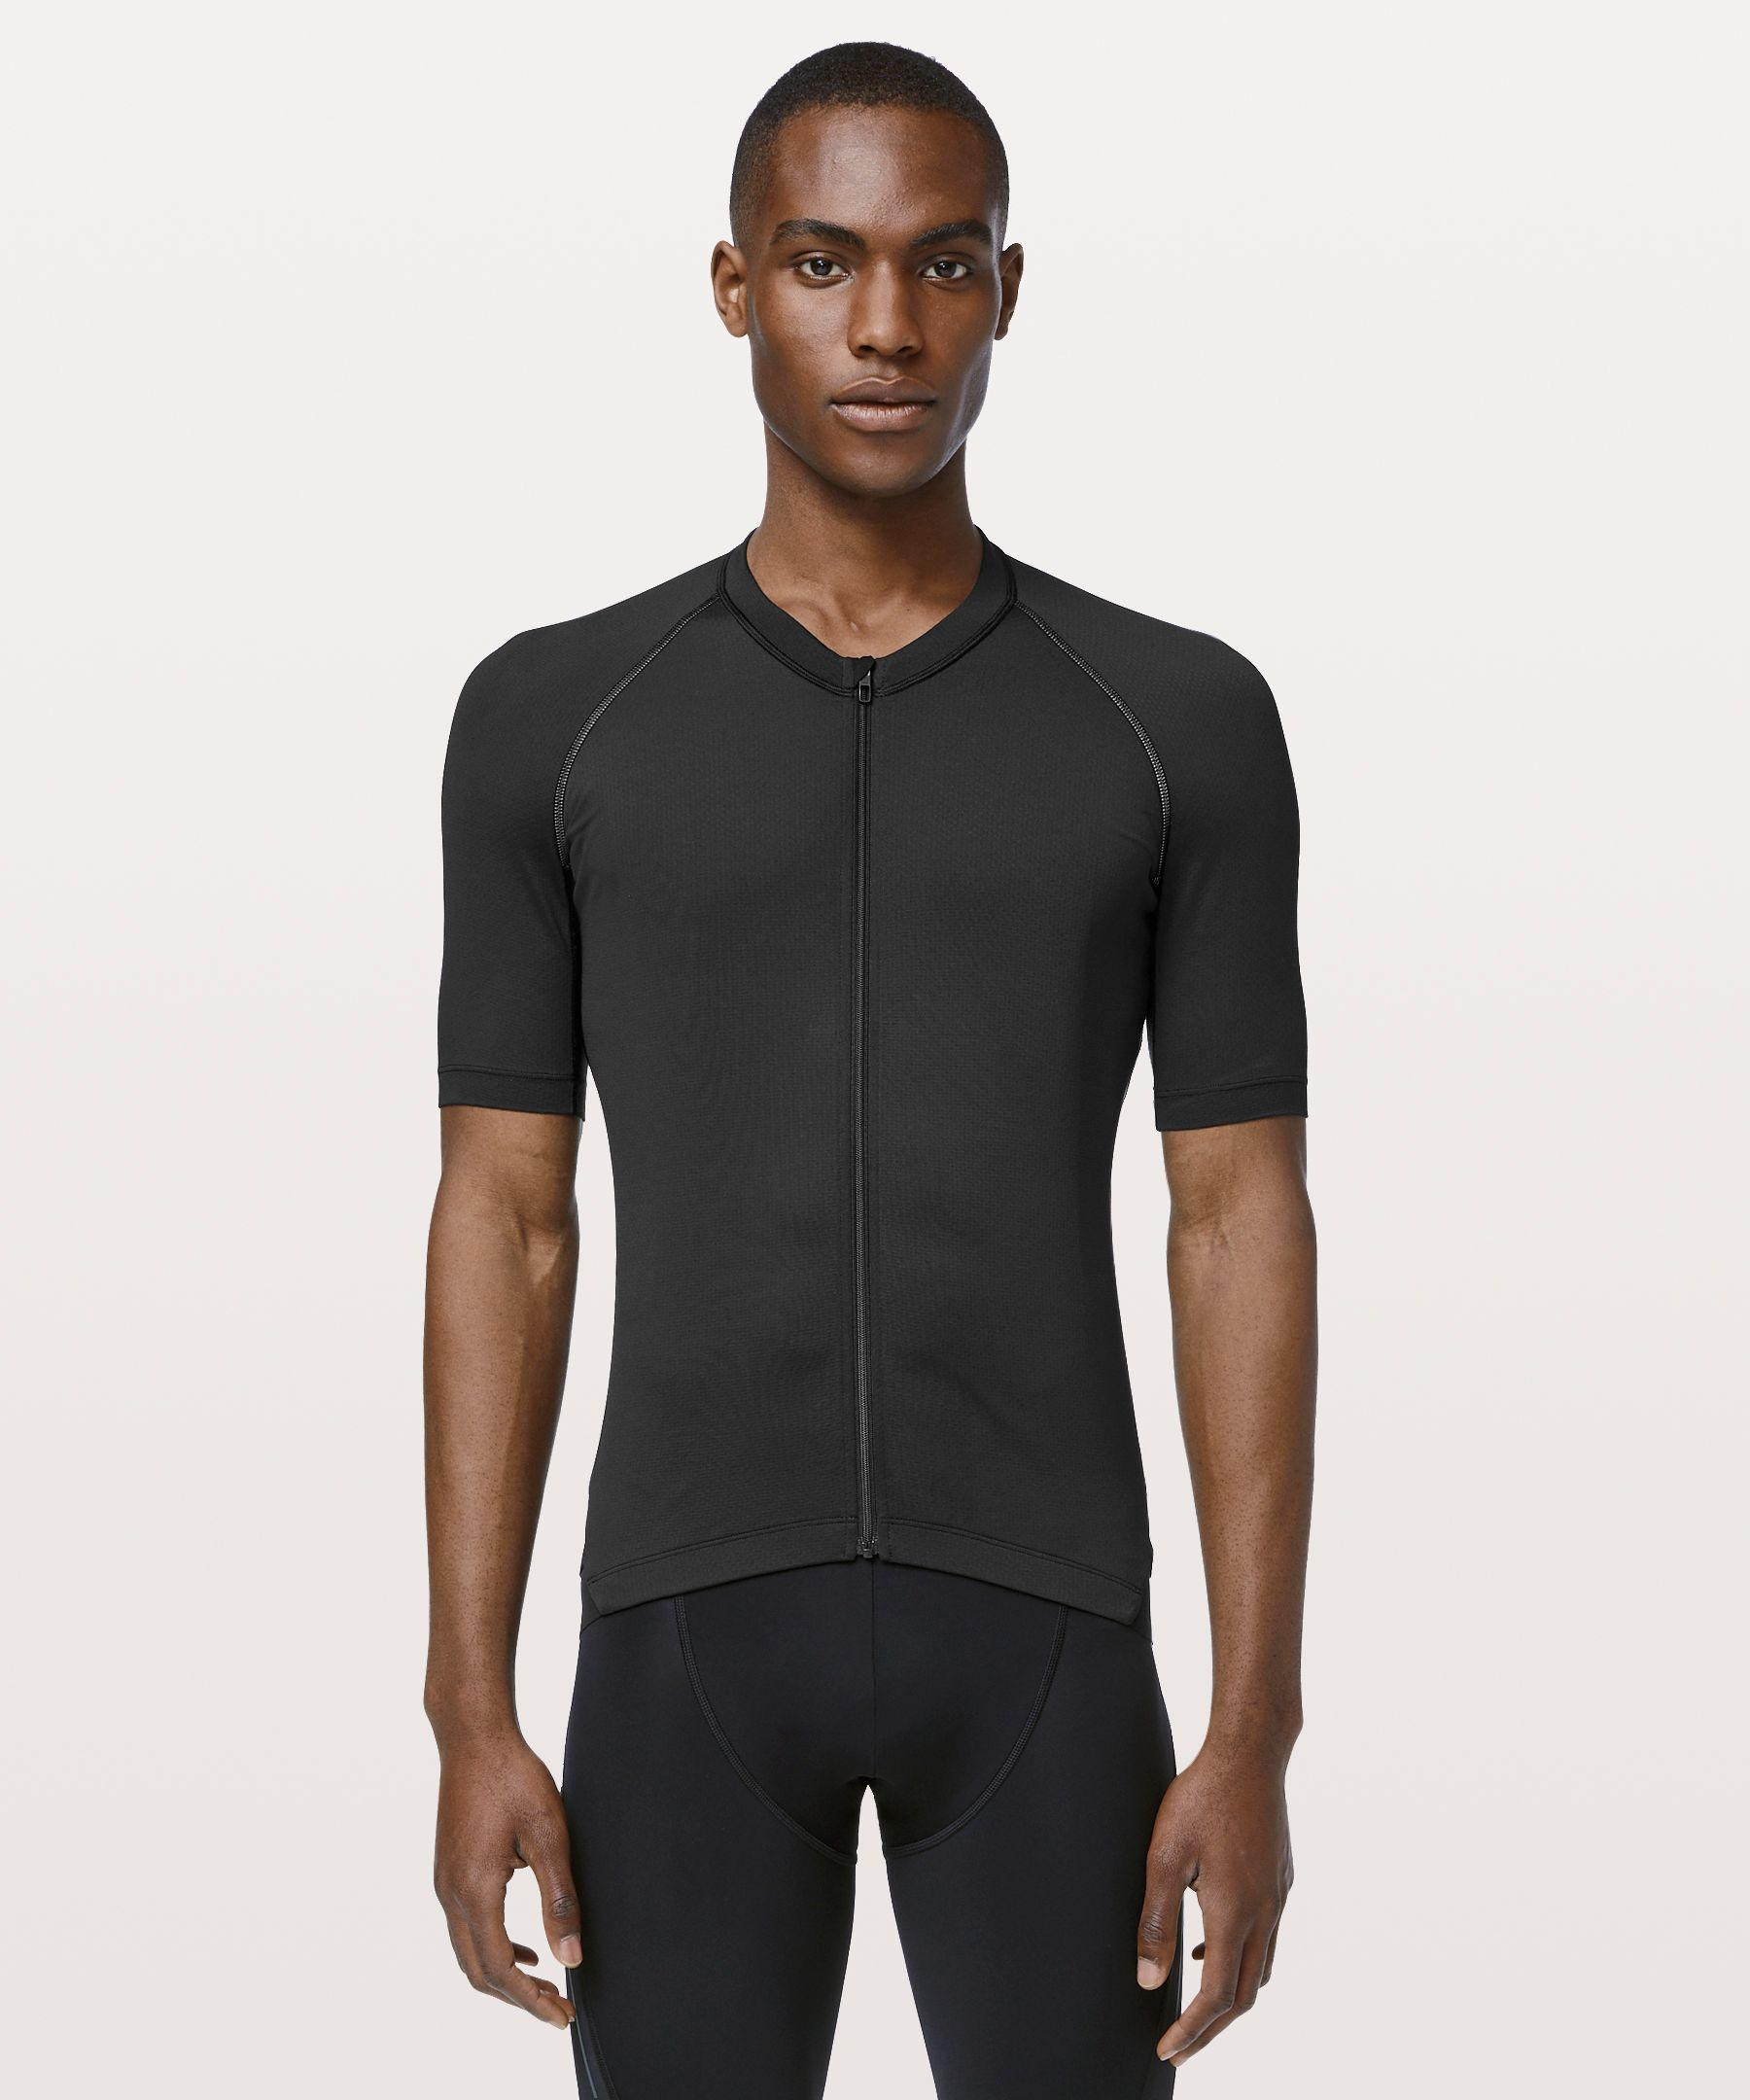 City to Summit Cycling Jersey